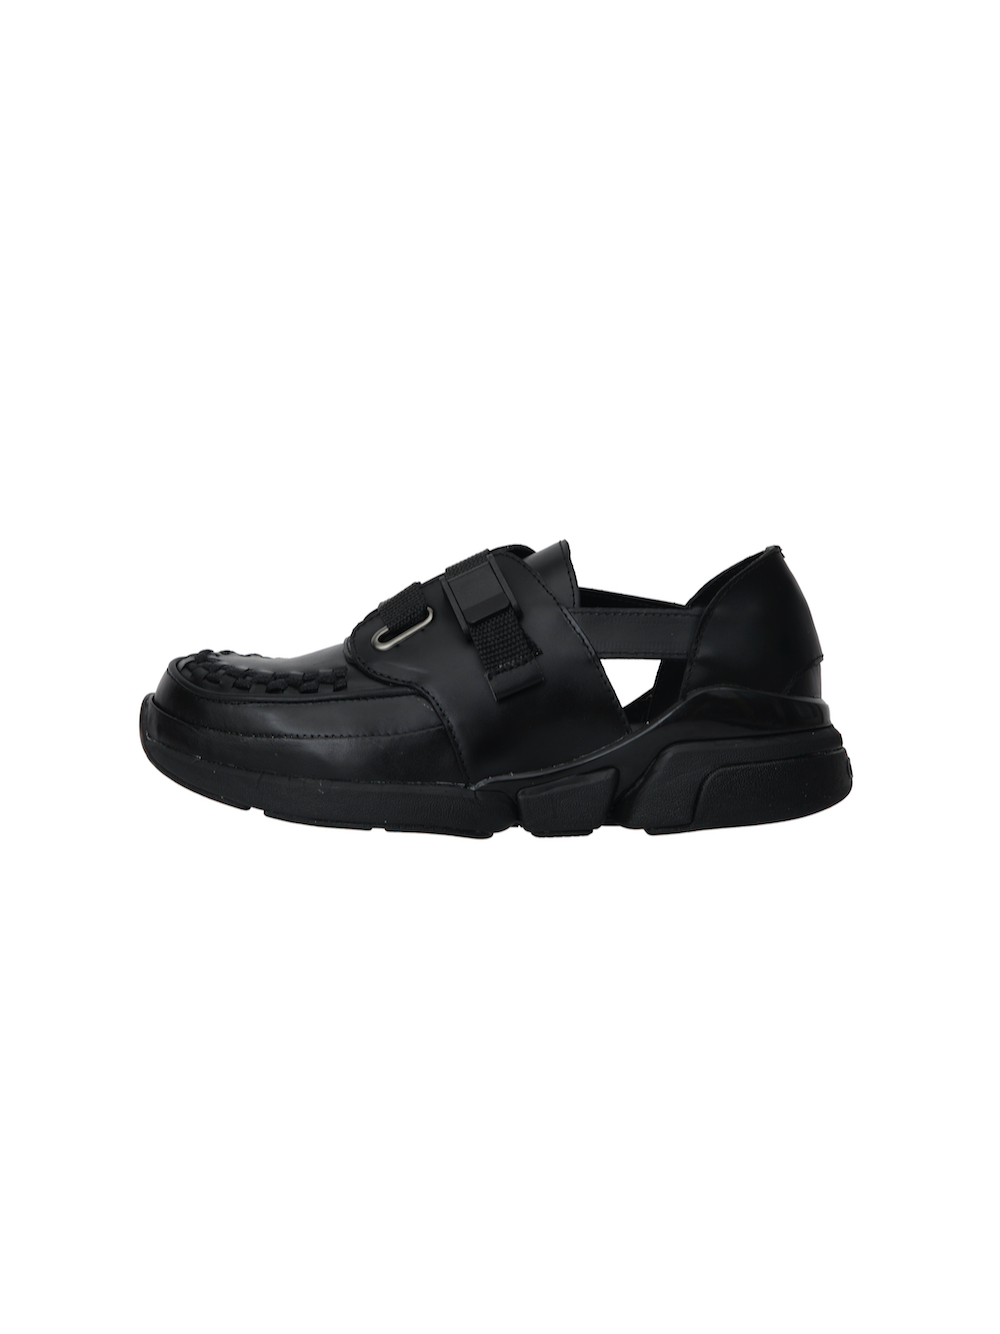 画像2: SEDSNESS (BLACK PREMO) SIZE : 8.0 [35,000+TAX]